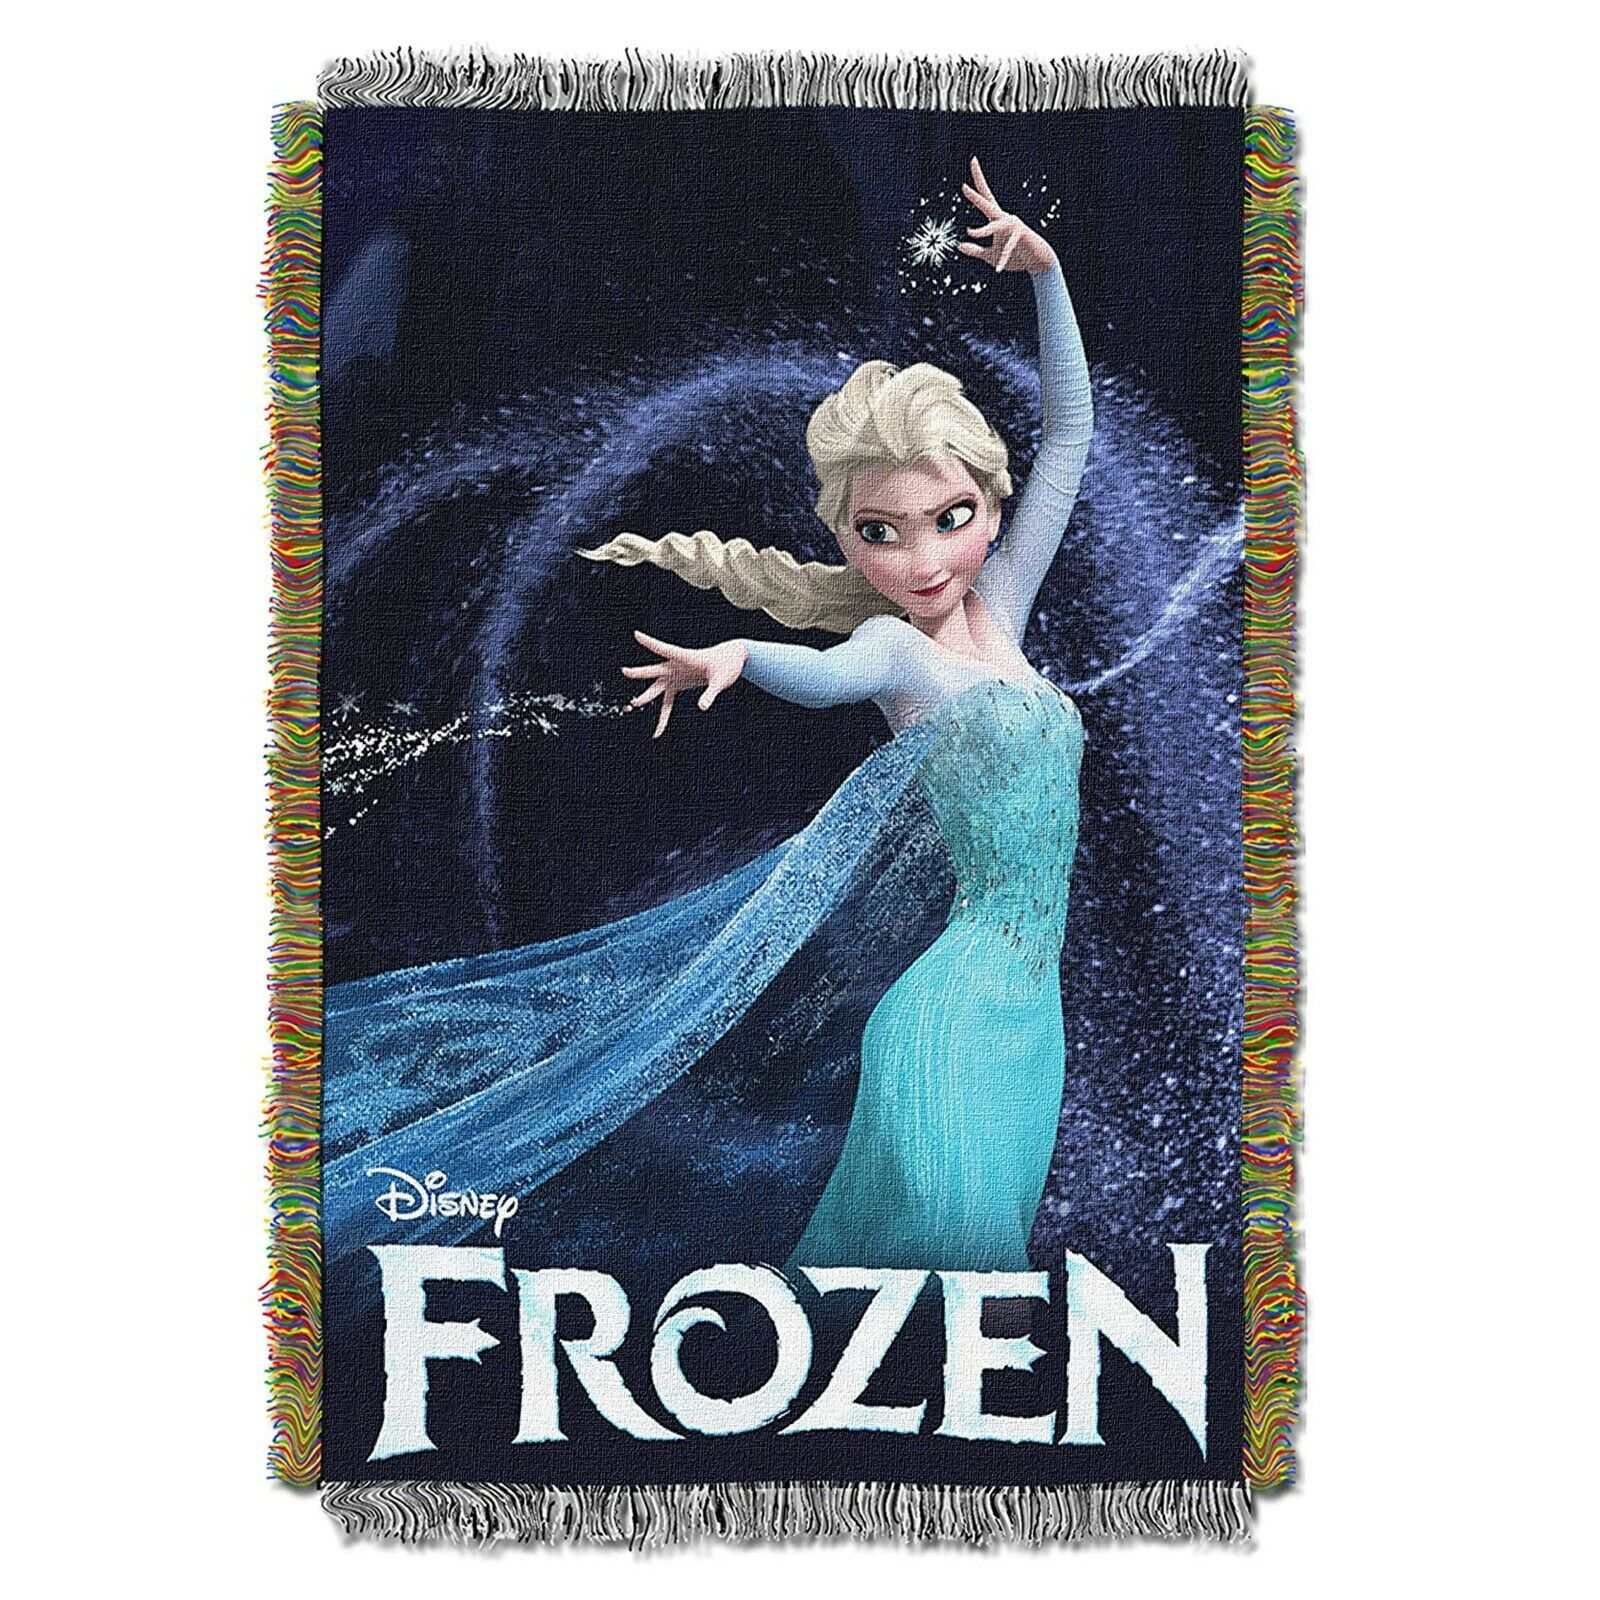 "Disney's Frozen, ""Queen of Ice"" Woven Tapestry Throw Blanket"